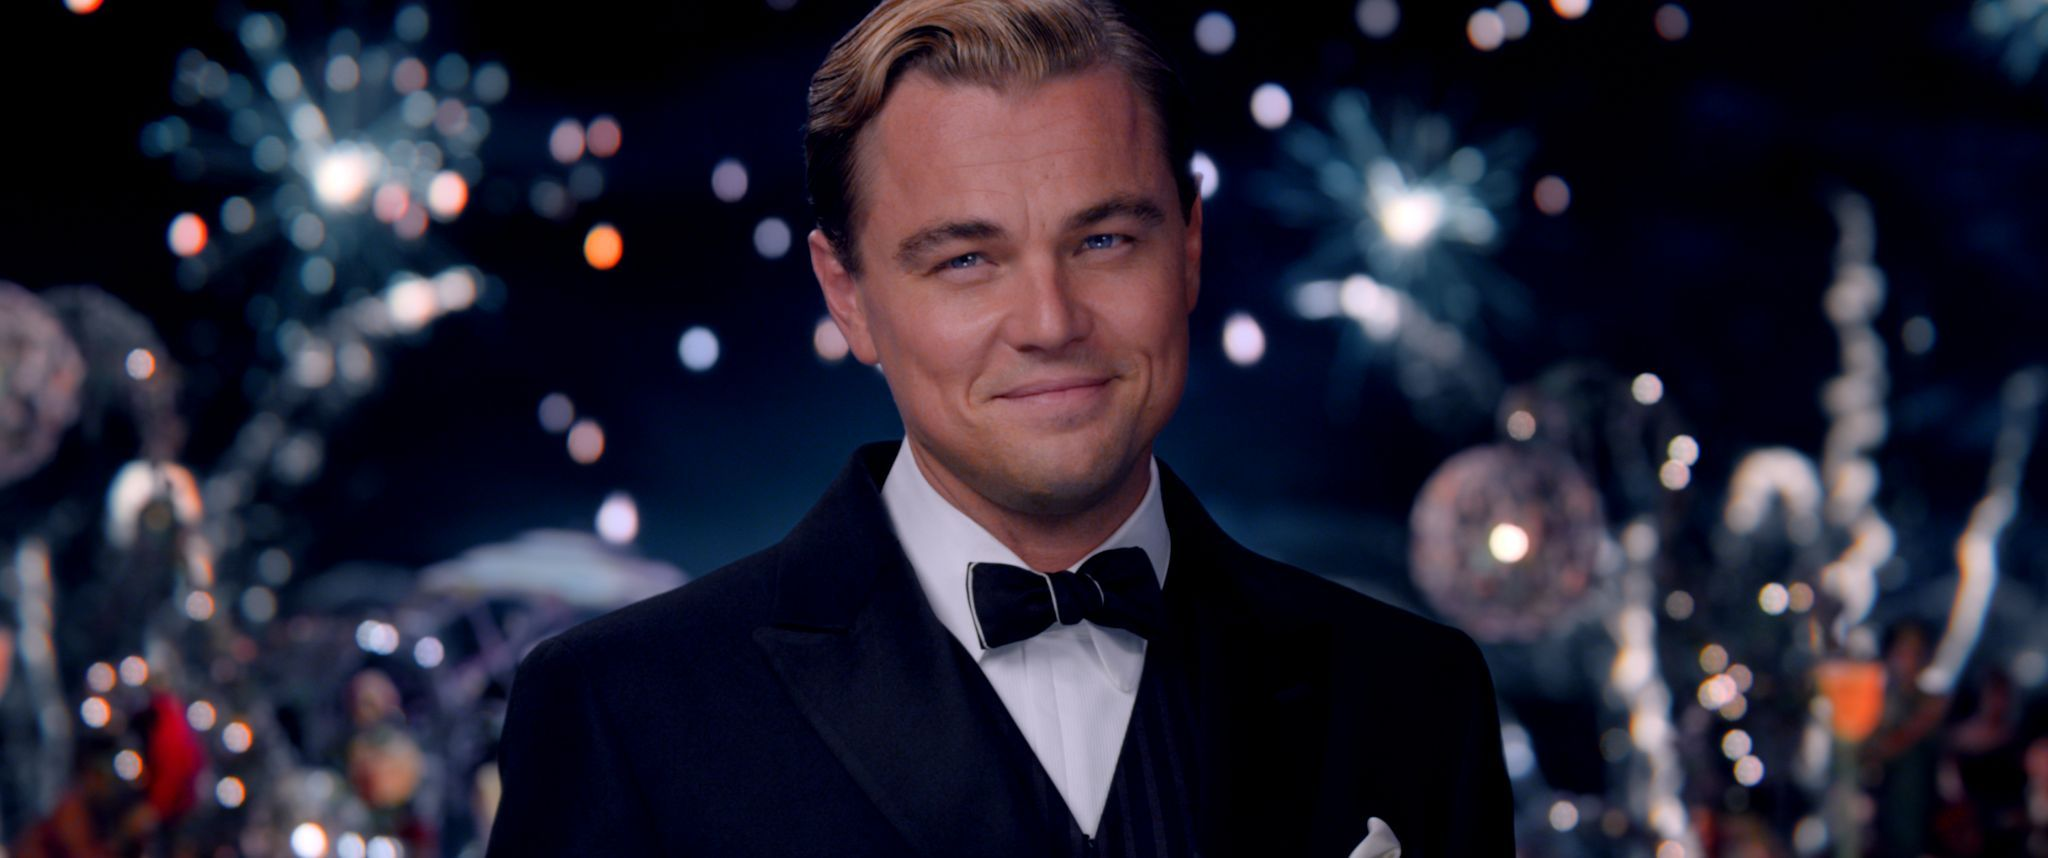 The Great Gatsby staple. #LeonardoDicapio #Gatsby #TheGreatGatsby www.facebook.com/thegreatgatsbymovie